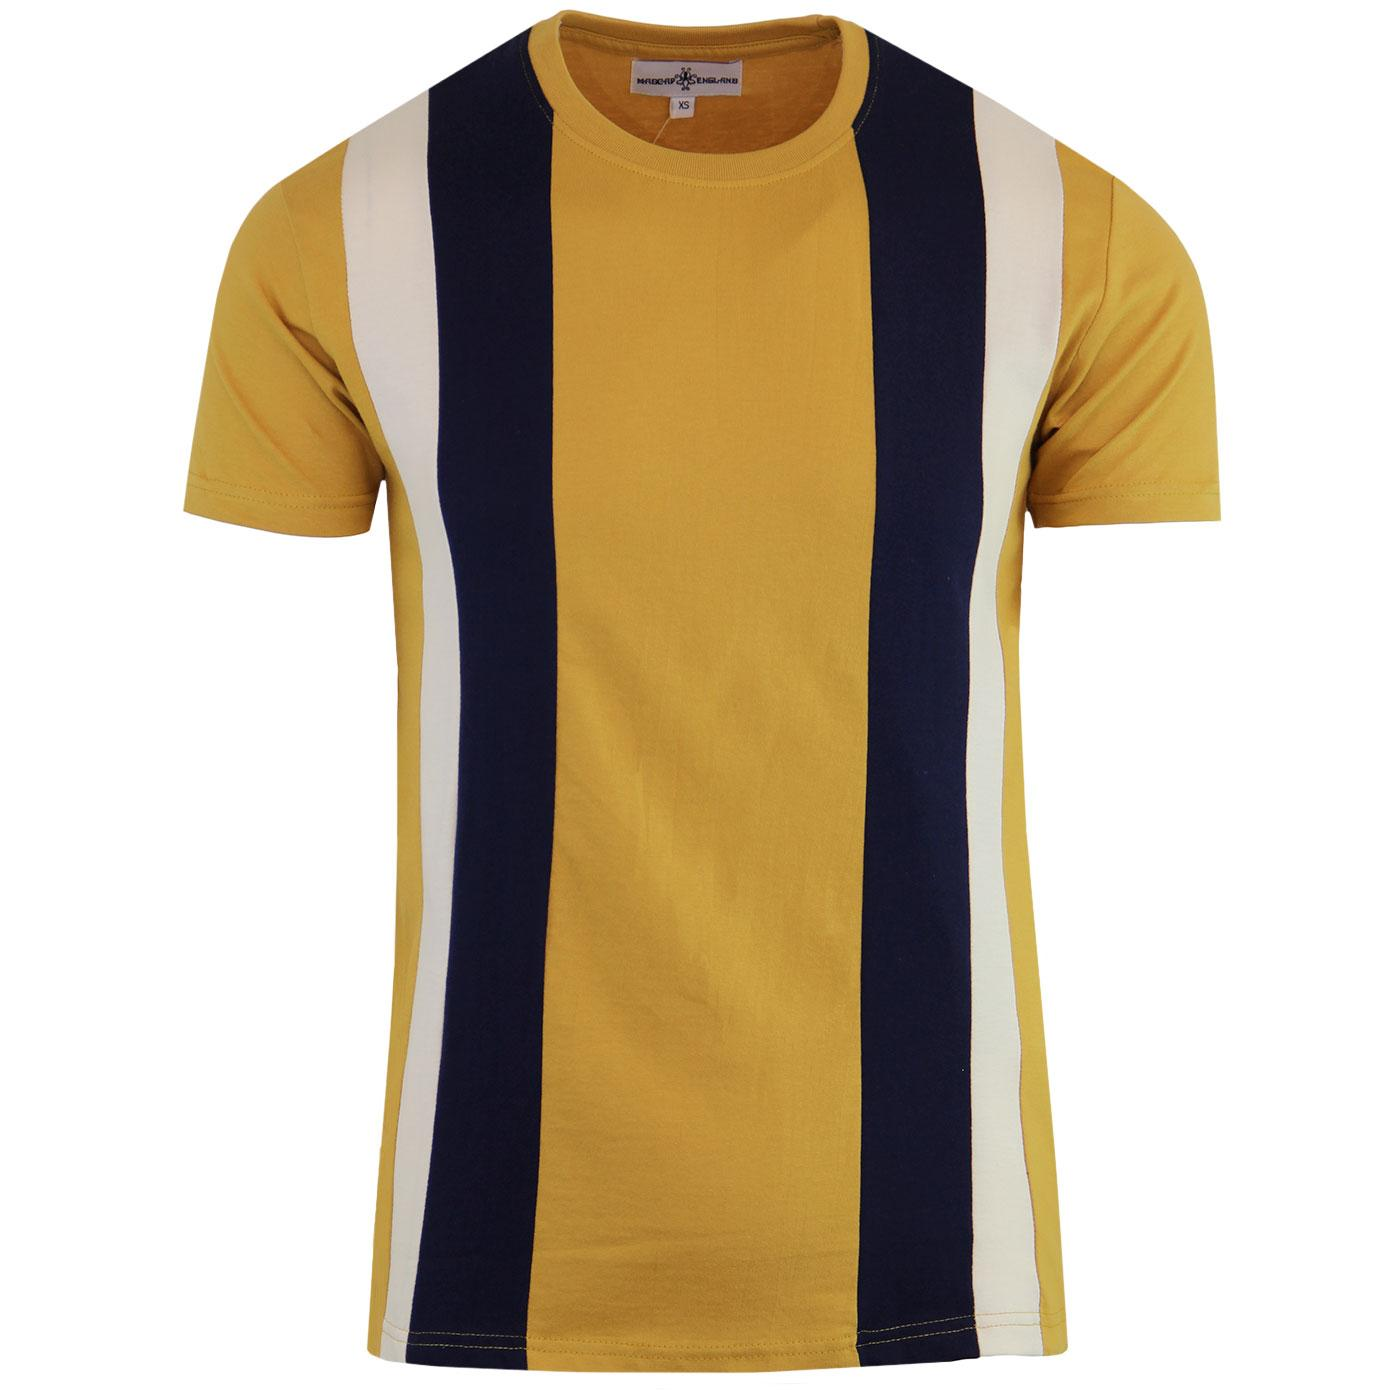 Afterglow MADCAP ENGLAND Mod Stripe Panel Tee (HG)